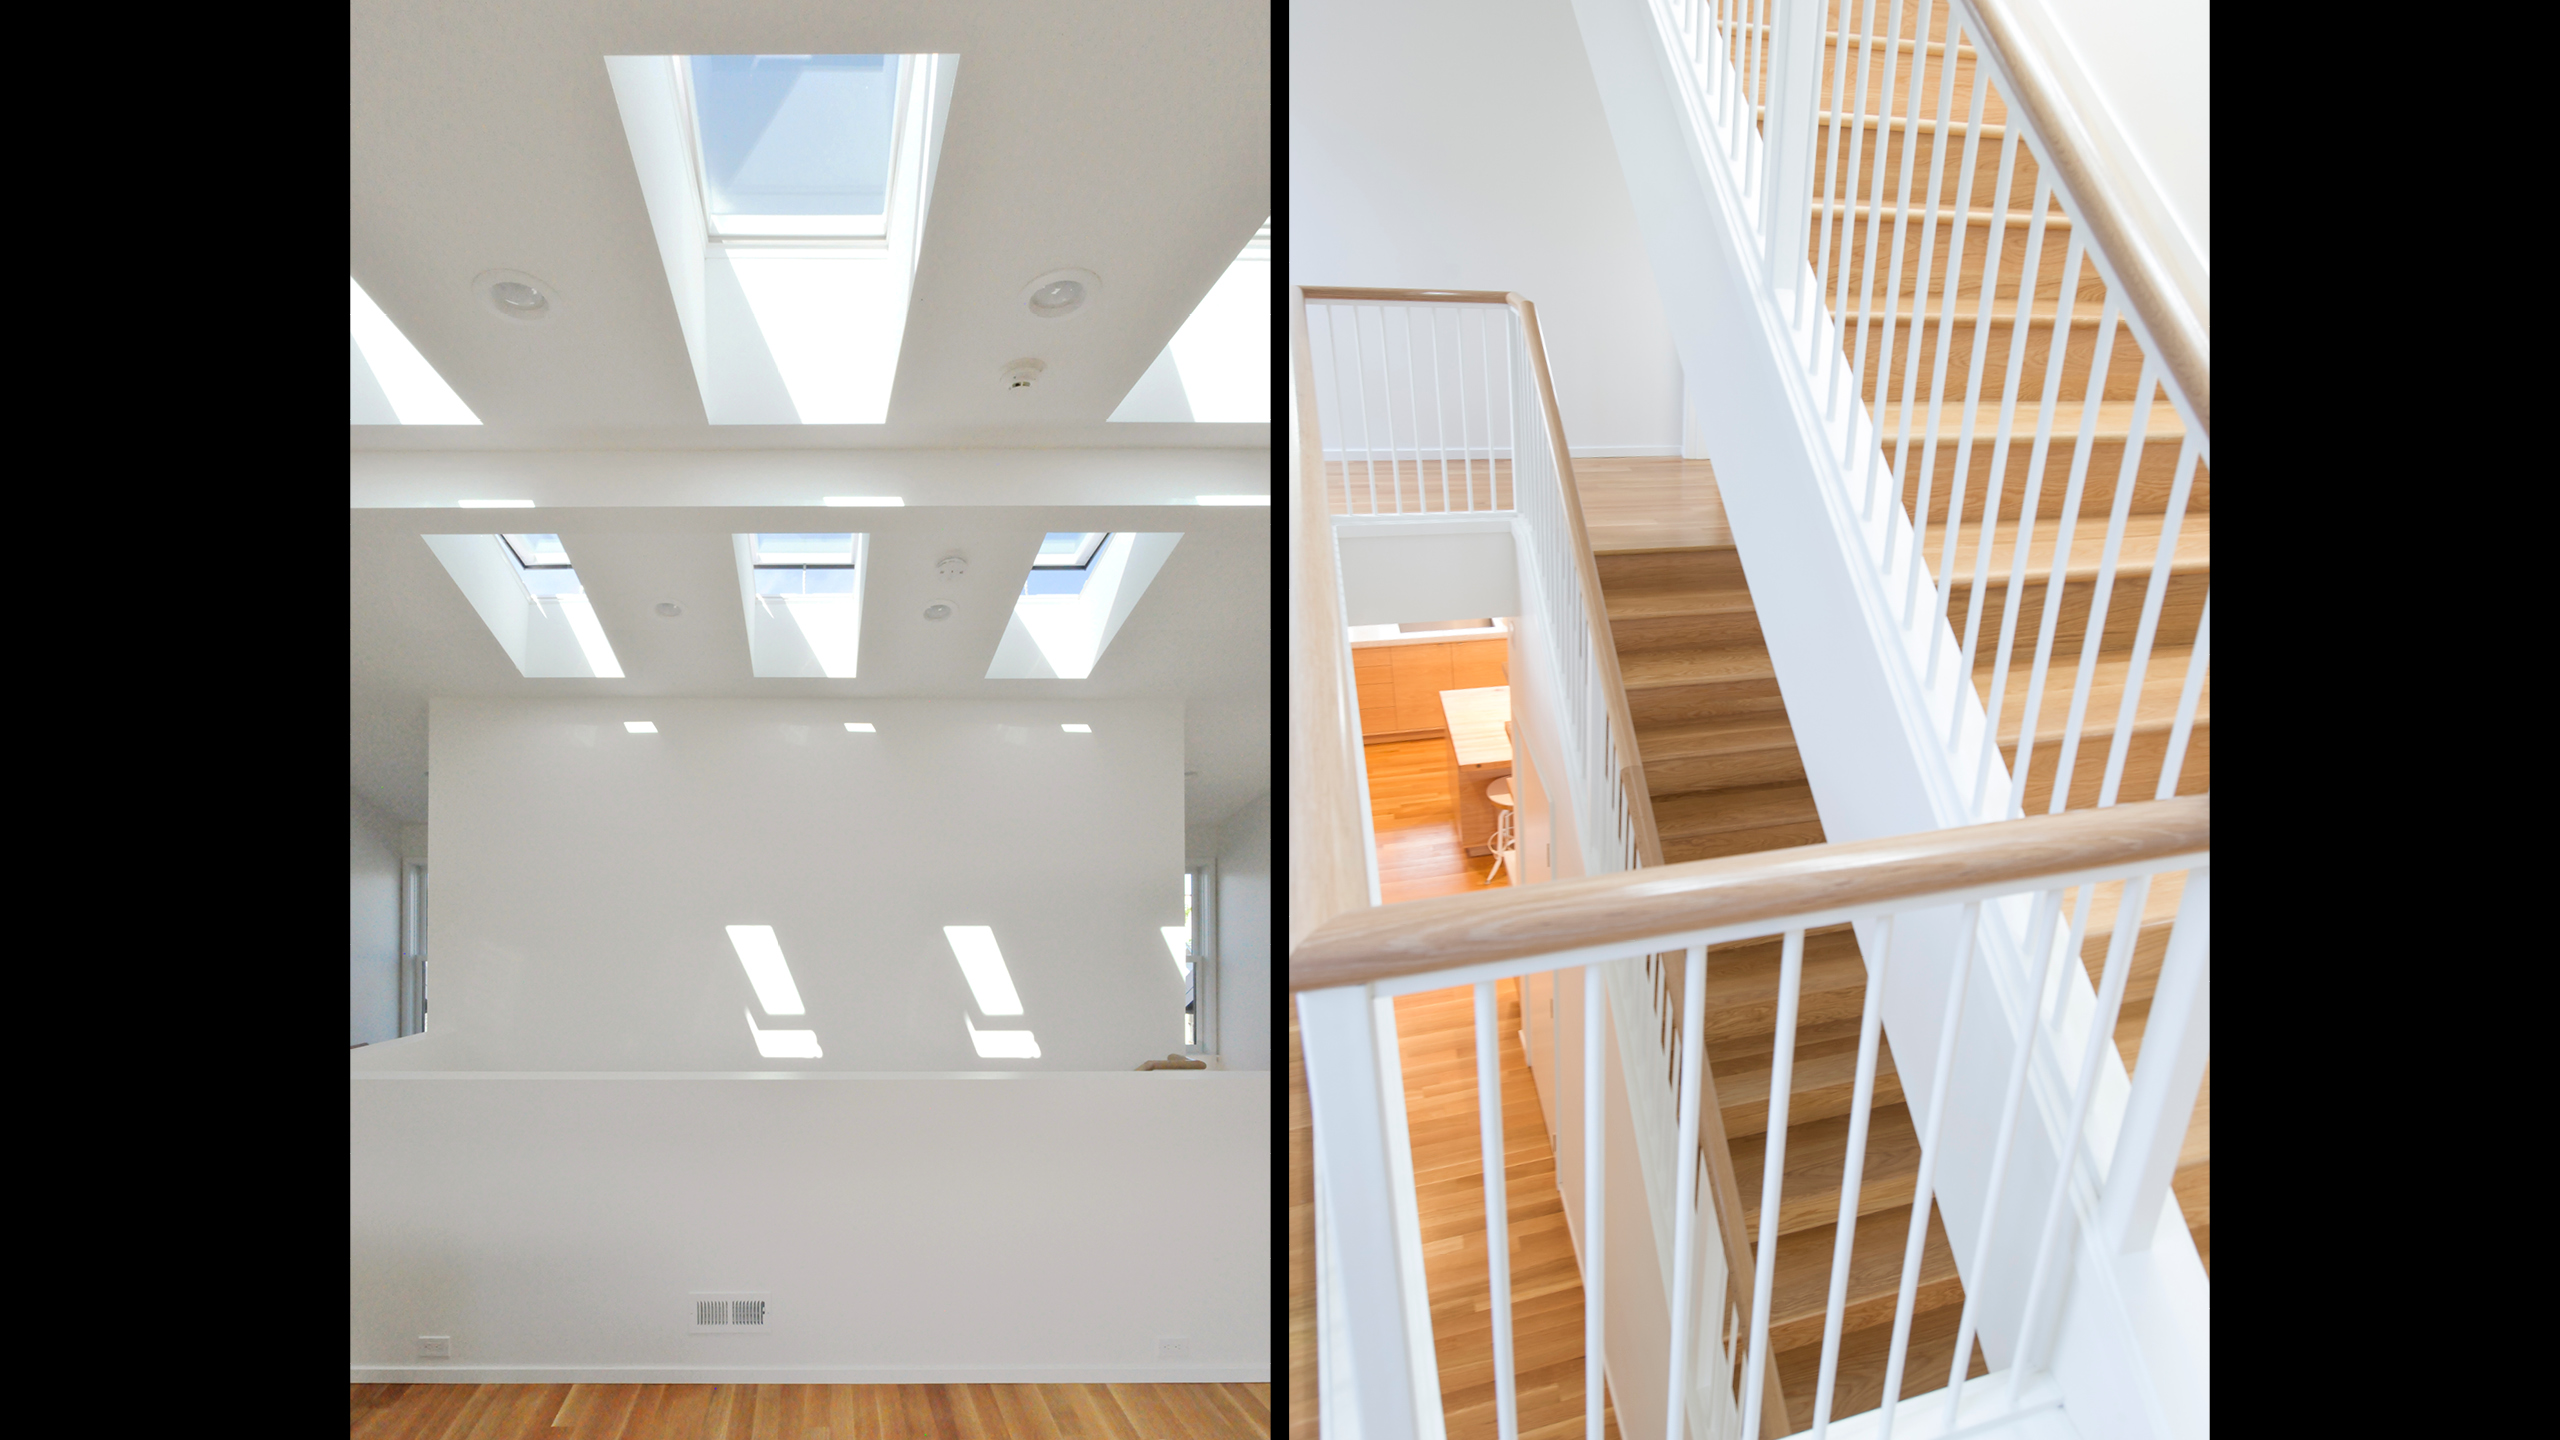 House C / image 2 / House C, natural light and stairway, design by OFFICE 52 Architecture